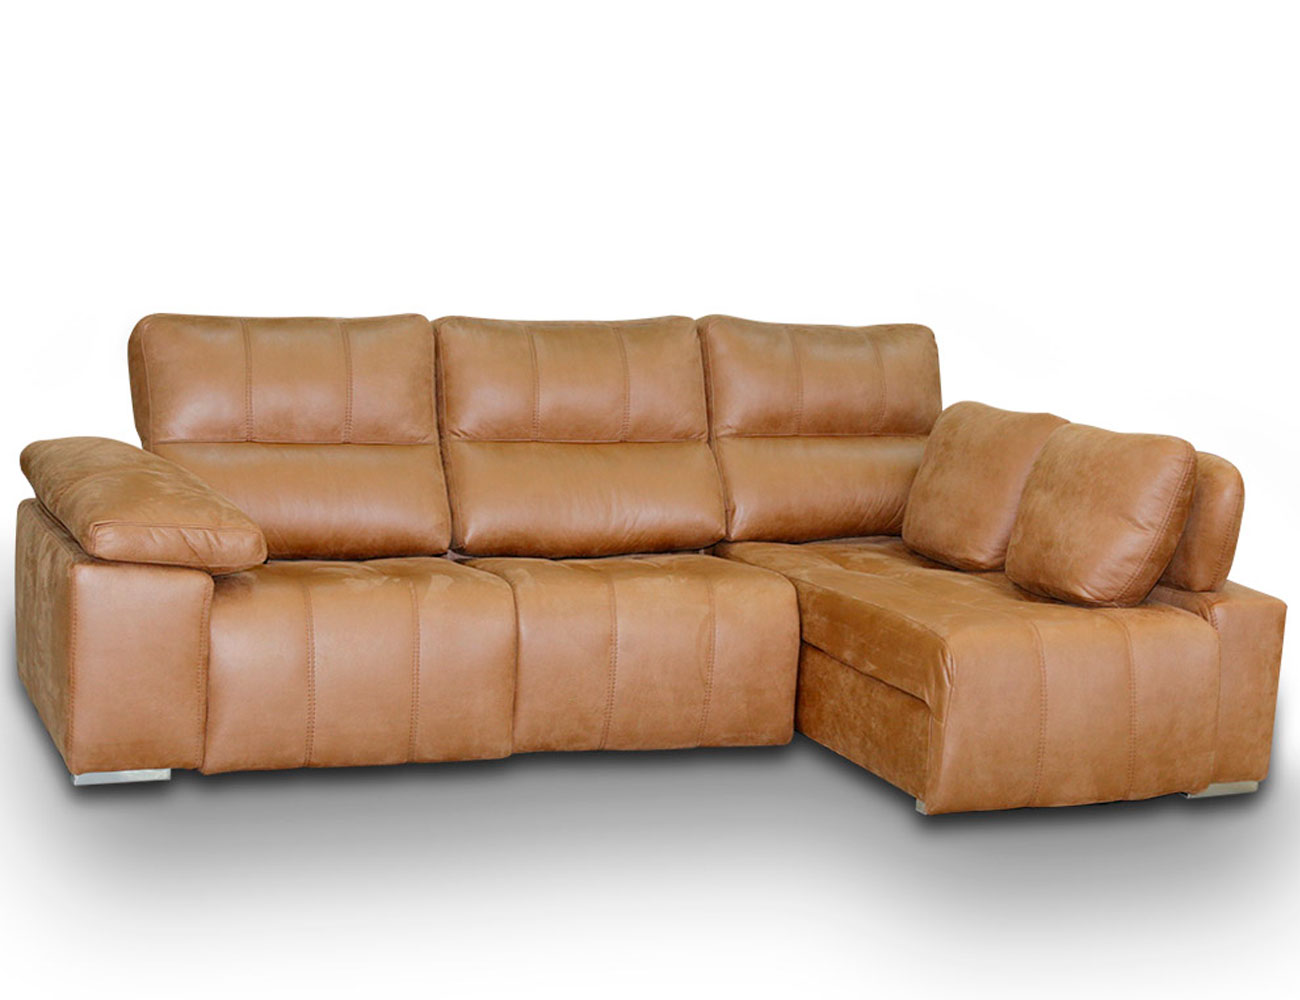 Sofa chaiselongue relax 2 motores anti manchas18